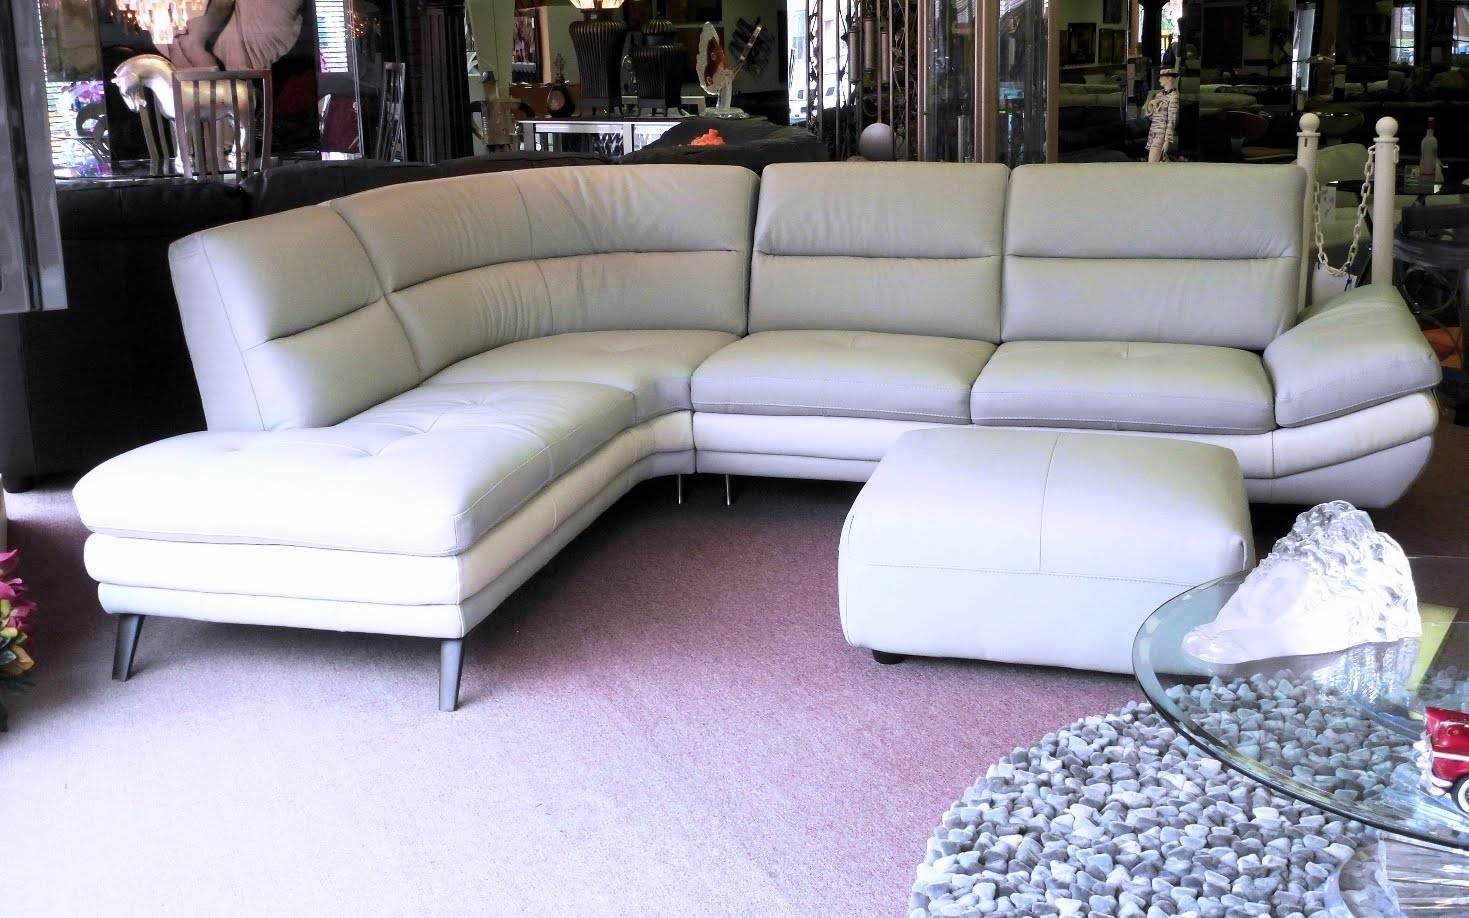 Sofa Mart Labor Day Sale Kivik Bed With Chaise Natuzzi Leather Sofas And Sectionals By Interior Concepts